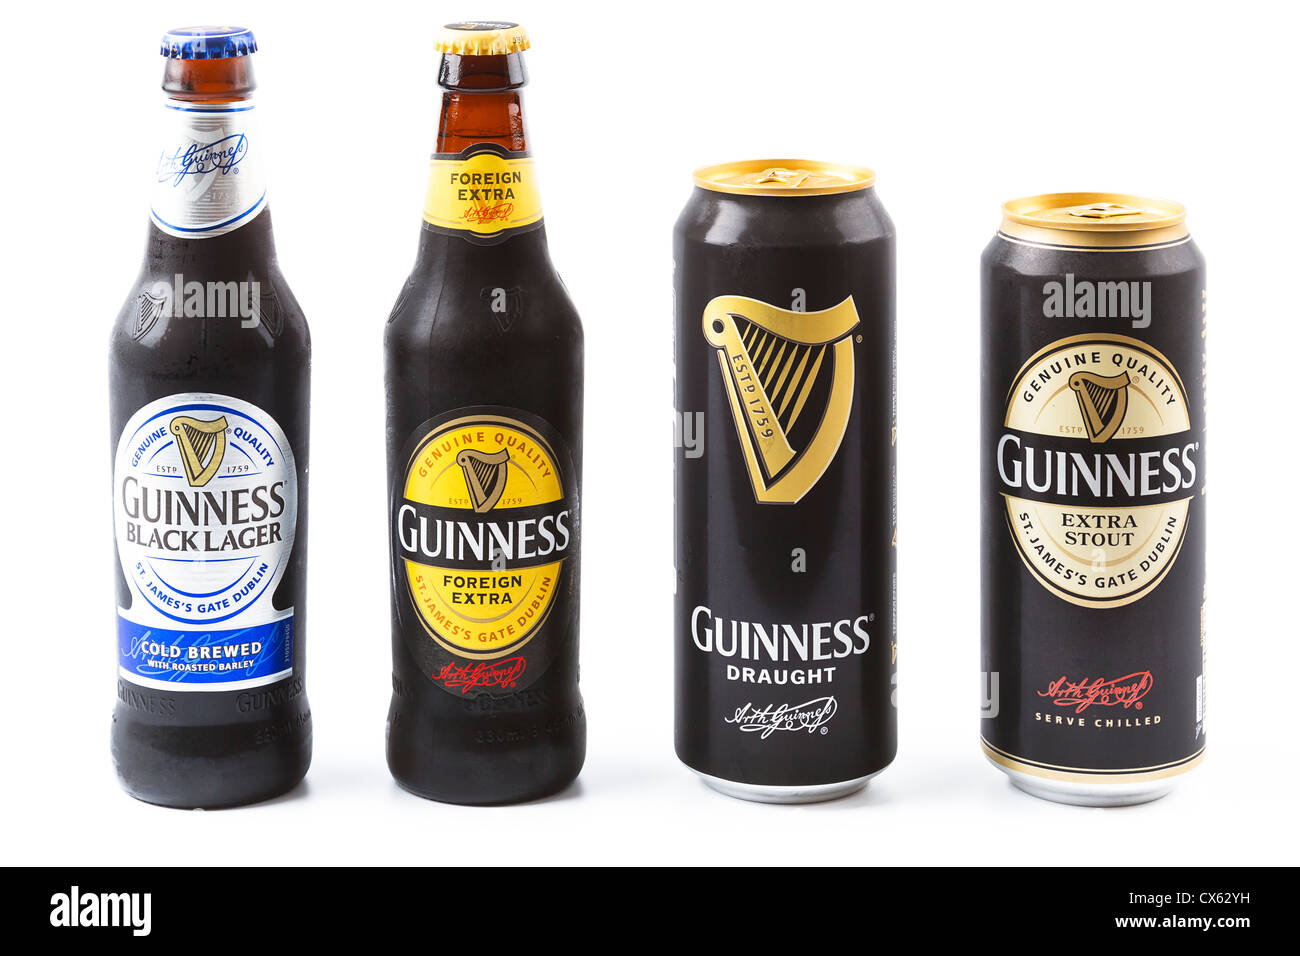 Dublin, Ireland - September 12, 2012. This is a studio product shot of Guinness stout/lager produced in Ireland. - Stock Image